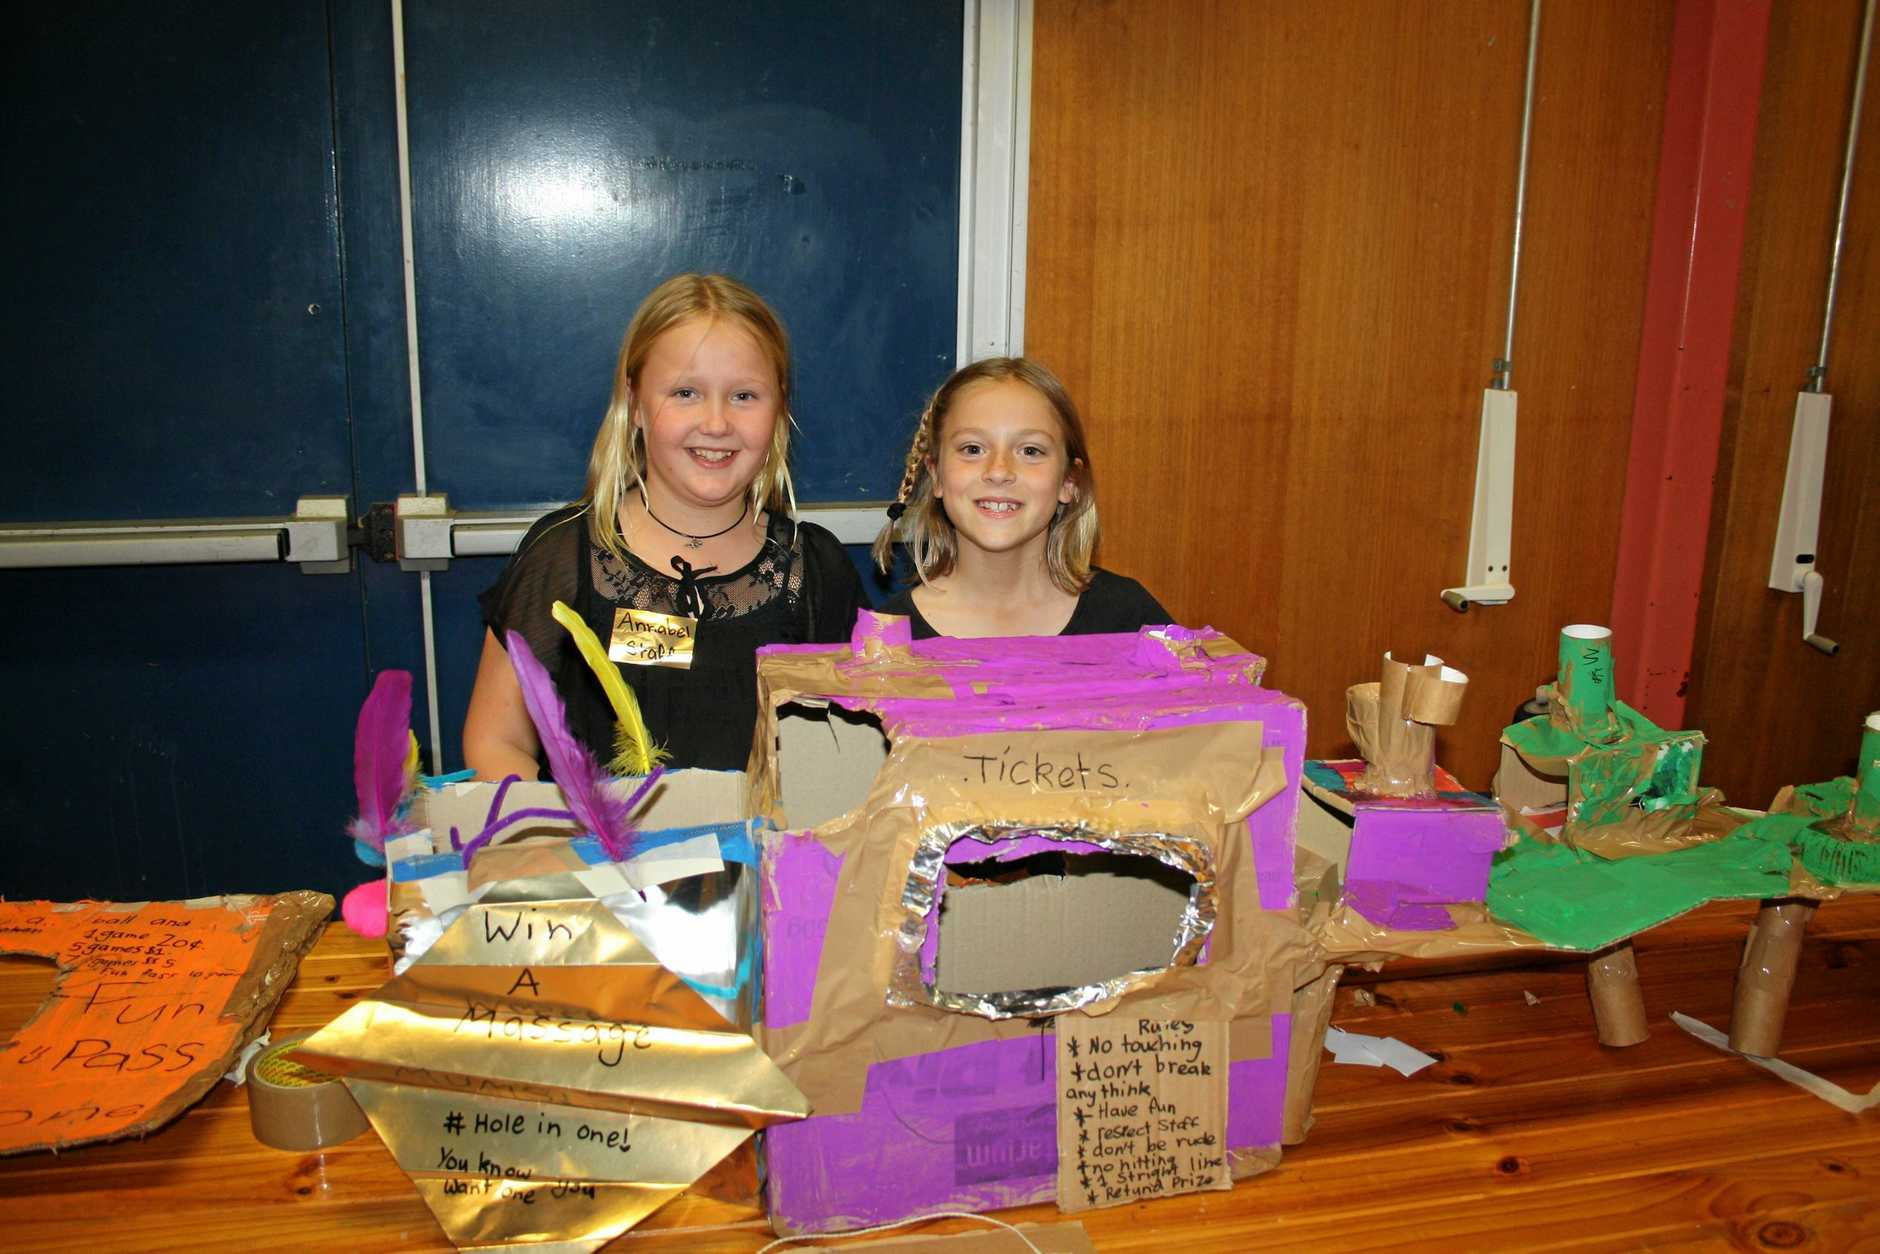 Year 4 students Annabel Dungey and Lexi Bryant showing off their 'Hole in One' pinball game.